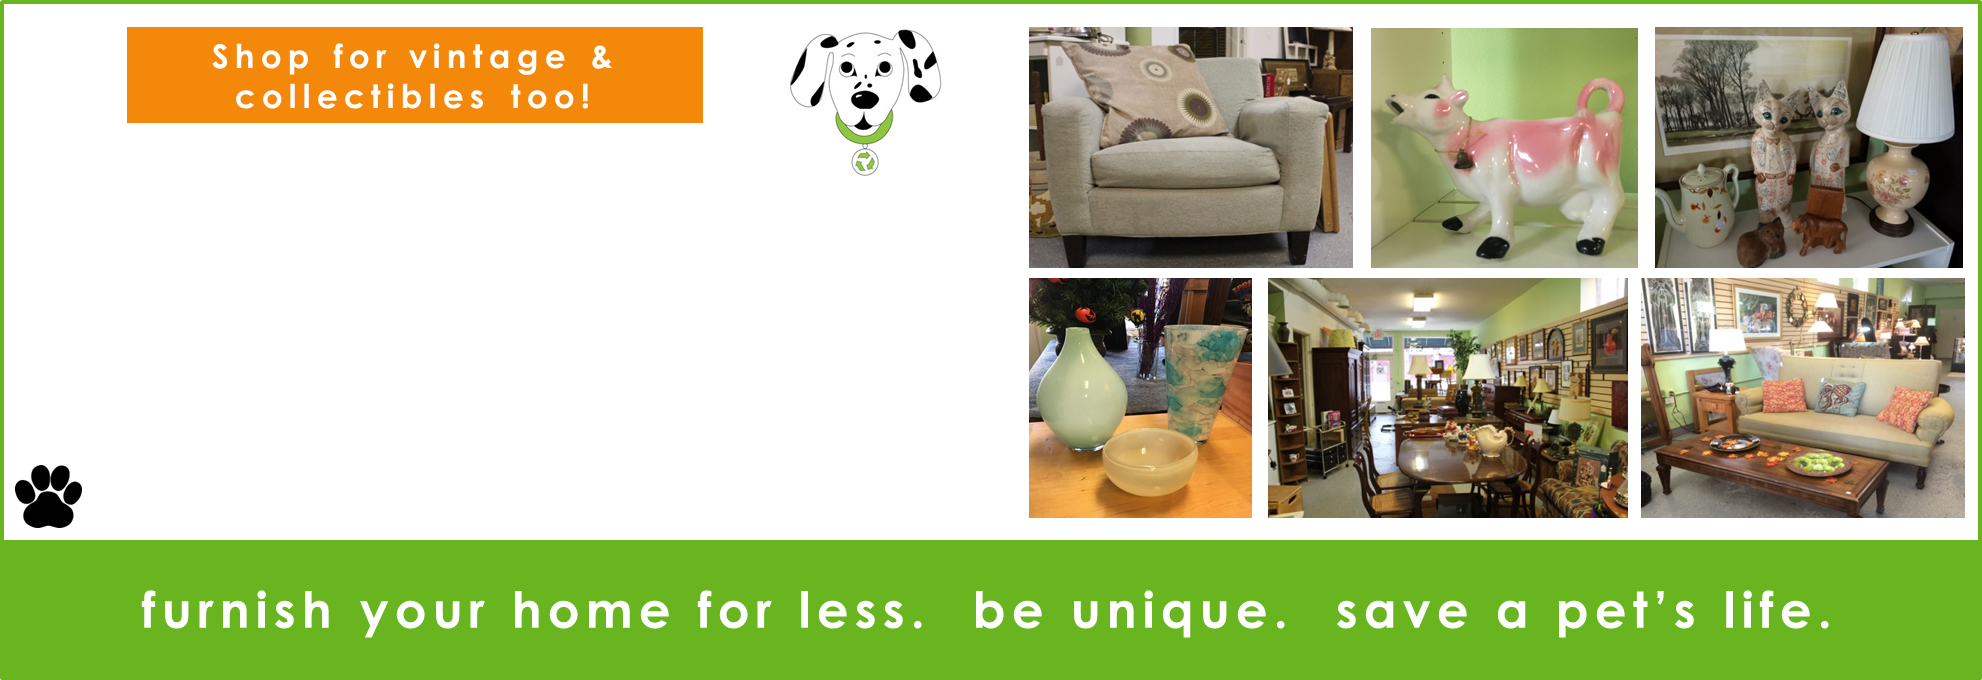 Our Furniture, Decor & More store!